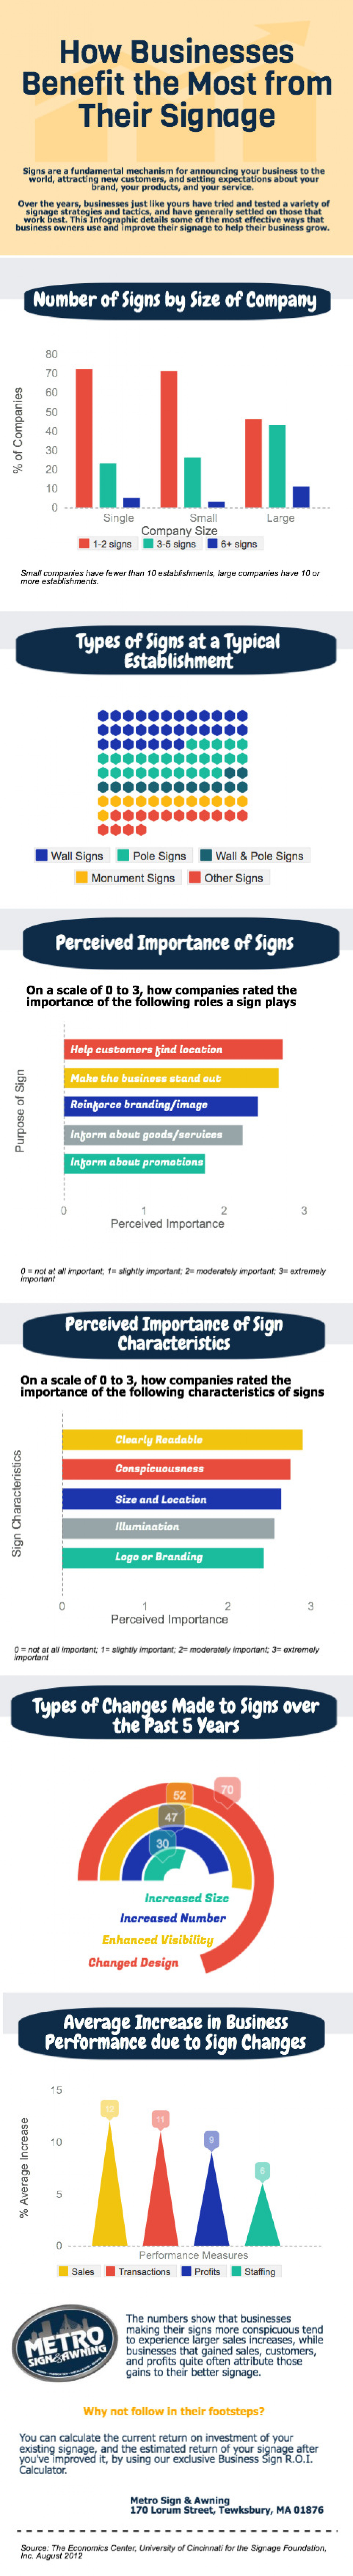 How Businesses Benefit the Most From Their Signage Infographic